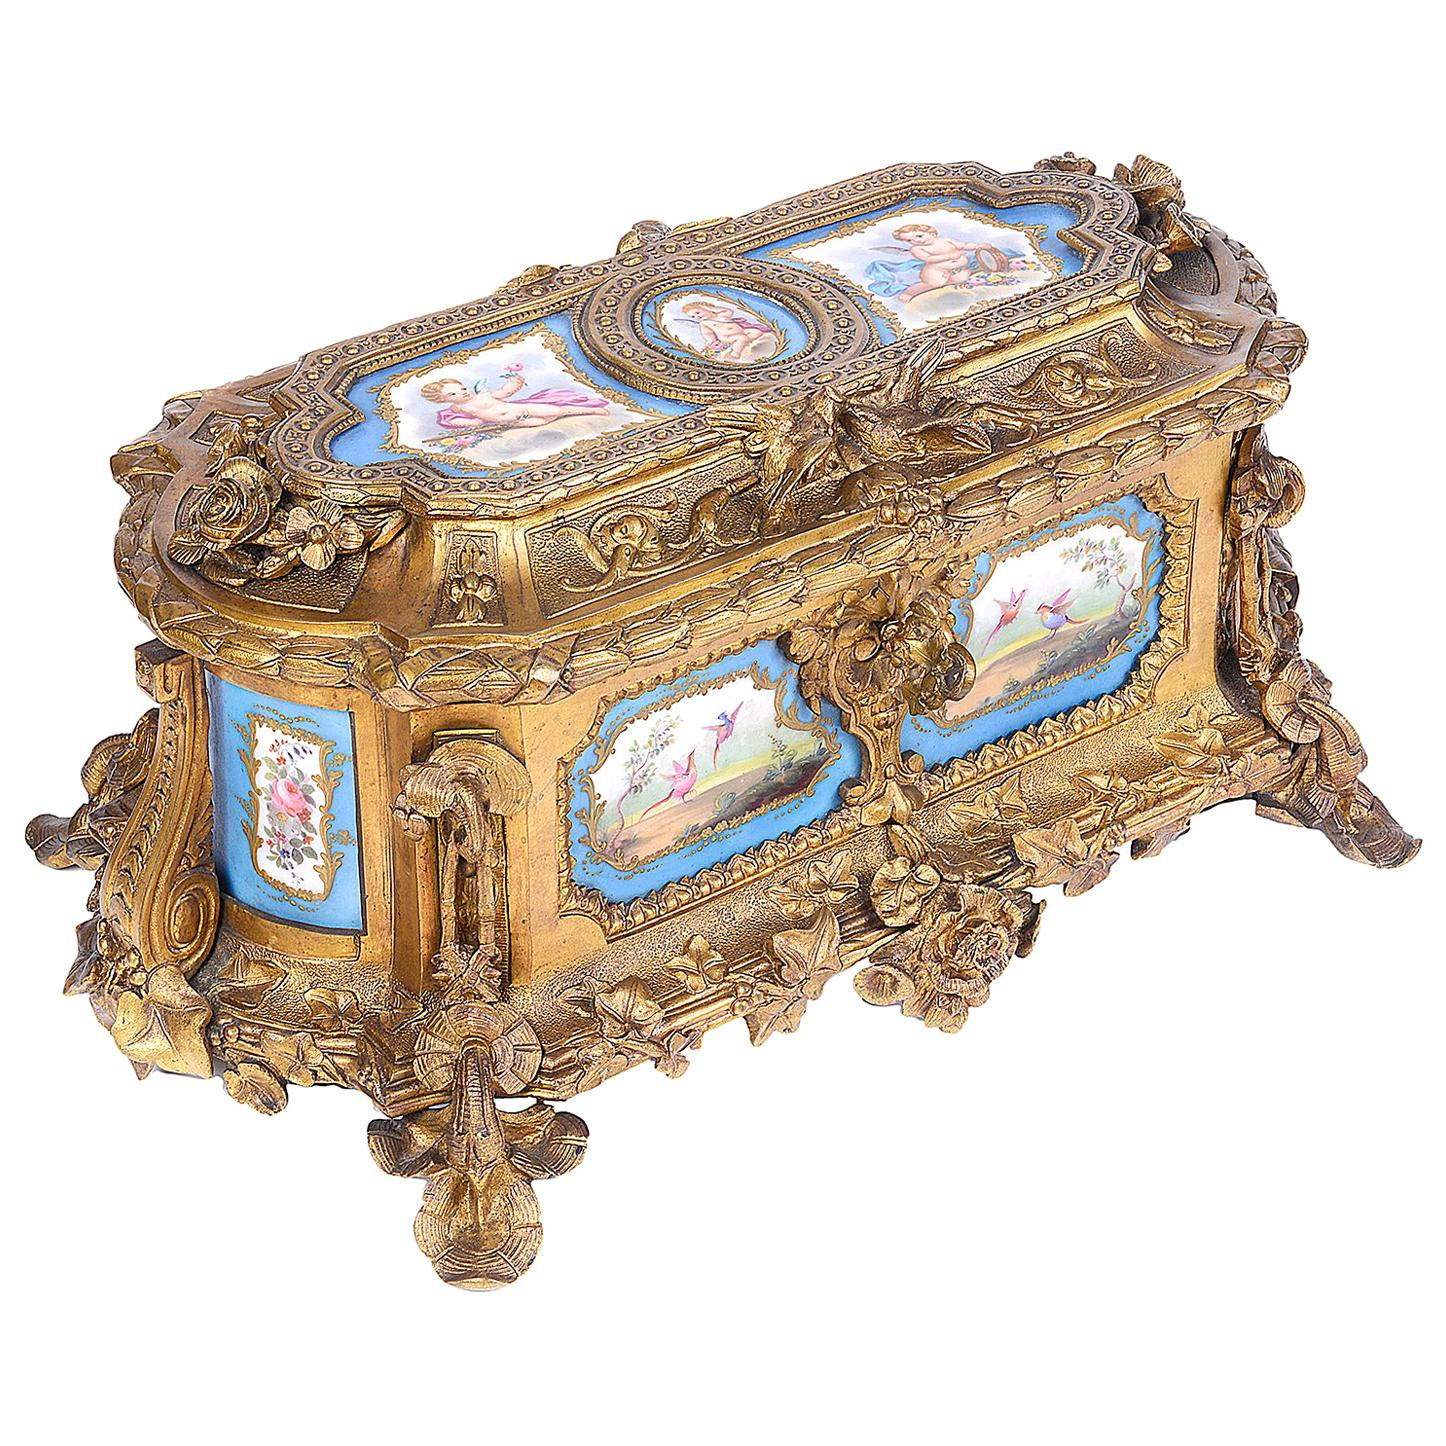 French Sevres Style Porcelain and Ormolu Casket, 19th Century